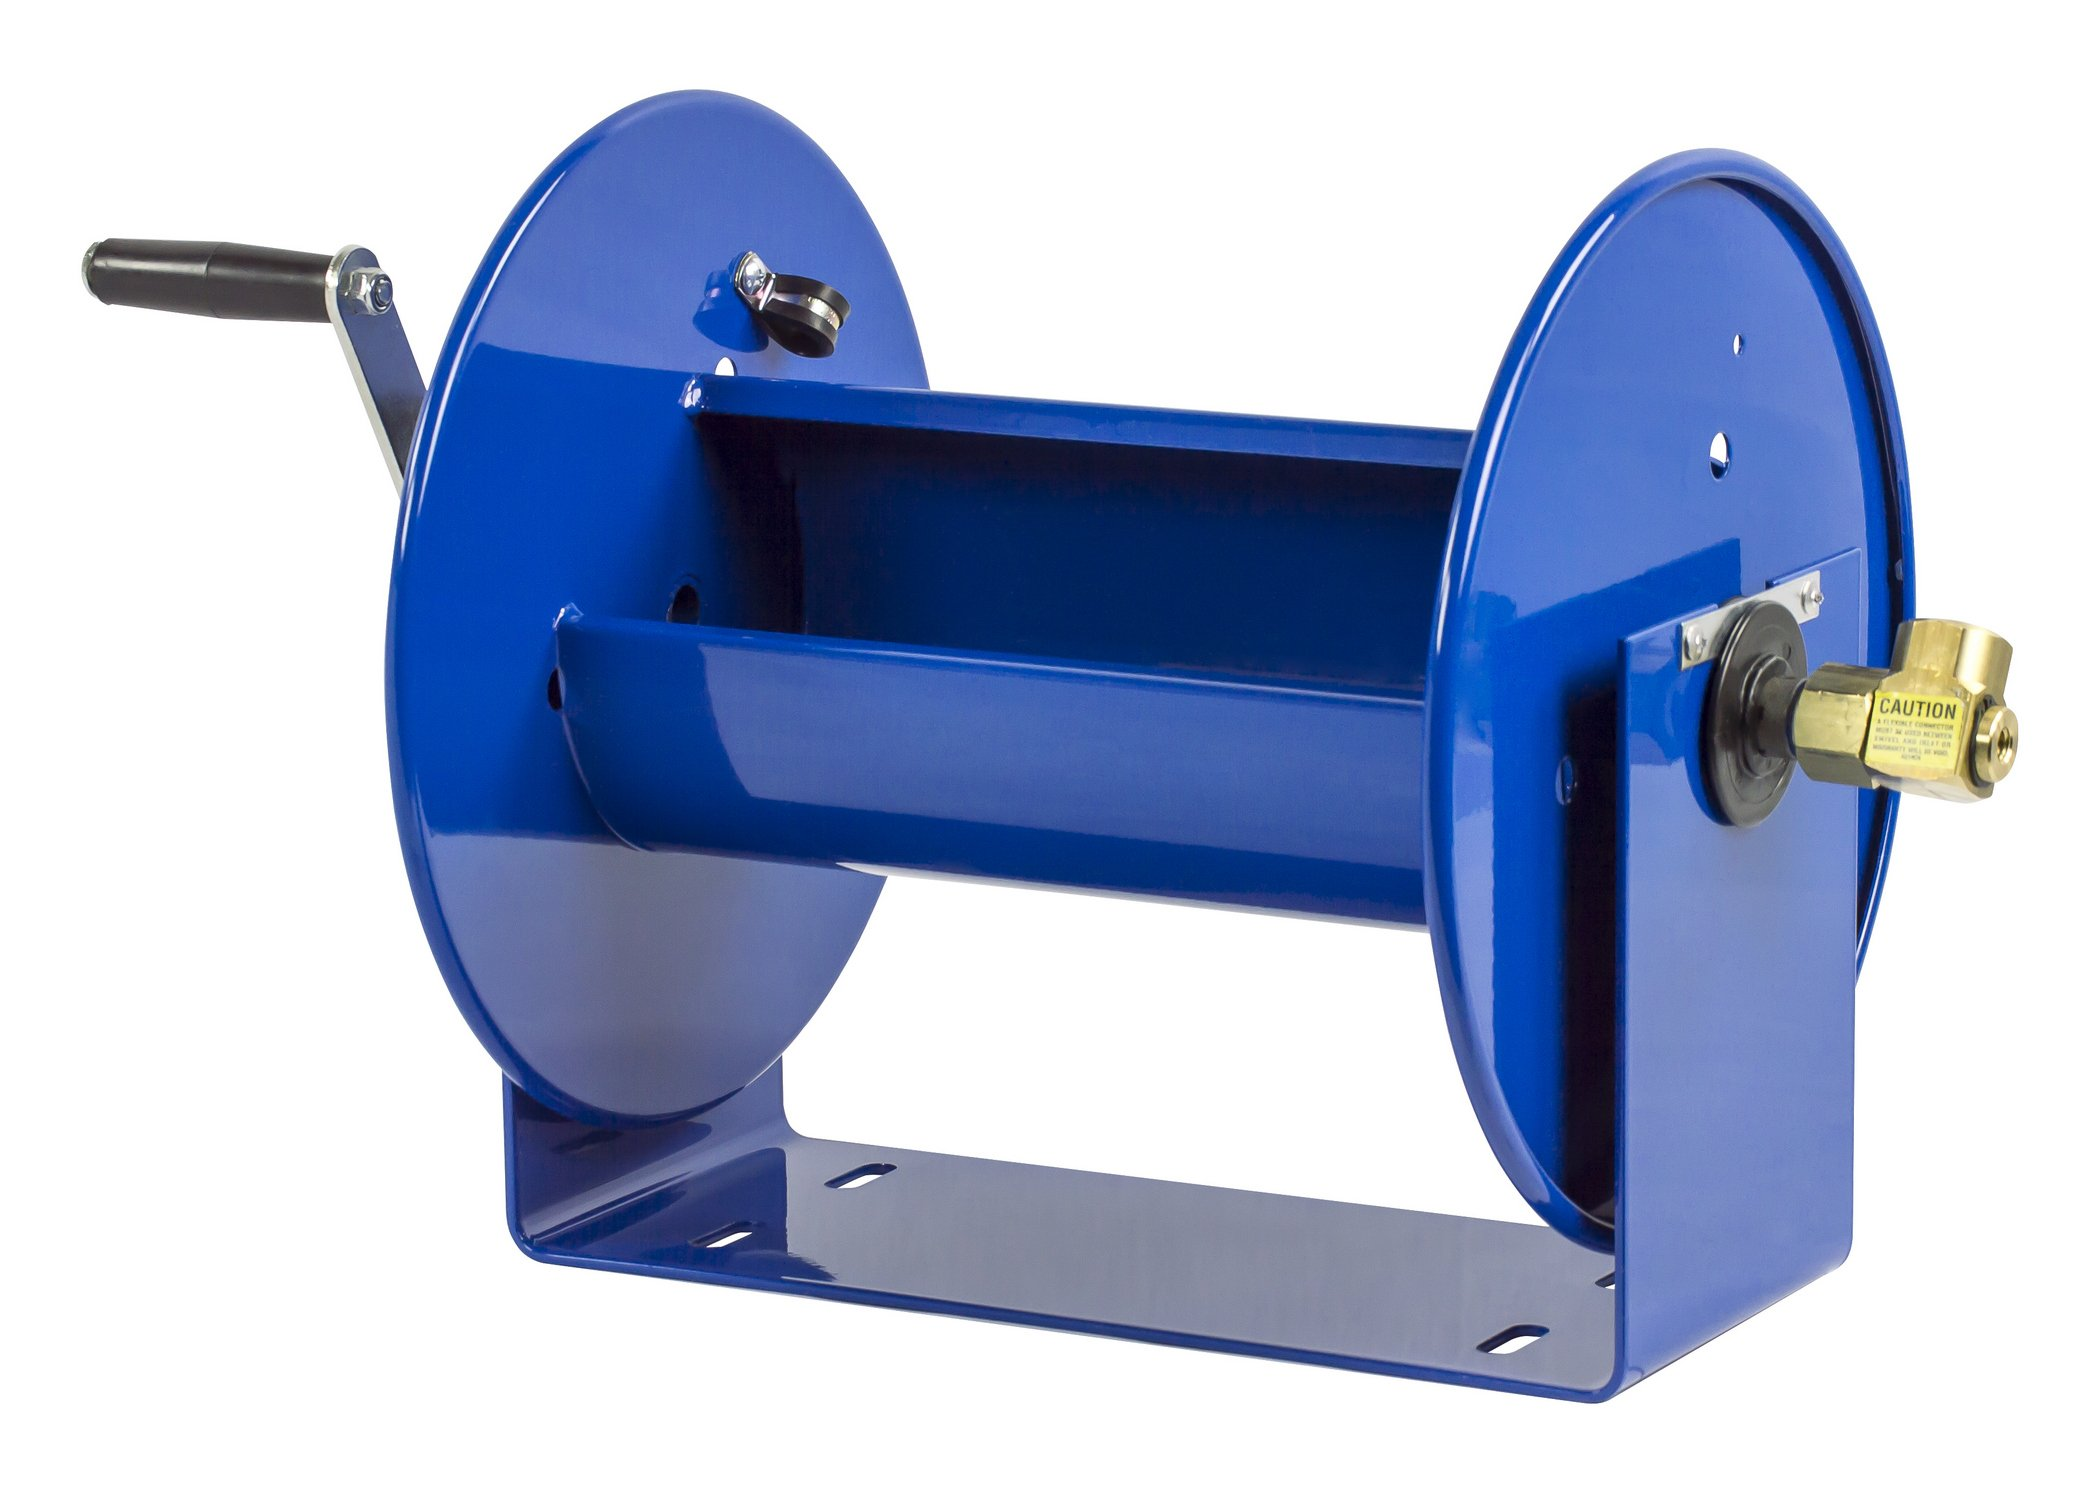 Coxreels 117-3-250 Compact Hand Crank Hose Reel, 4,000 PSI, Holds 3/8'' x 250' Length Hose, Hose Not Included by Coxreels (Image #6)